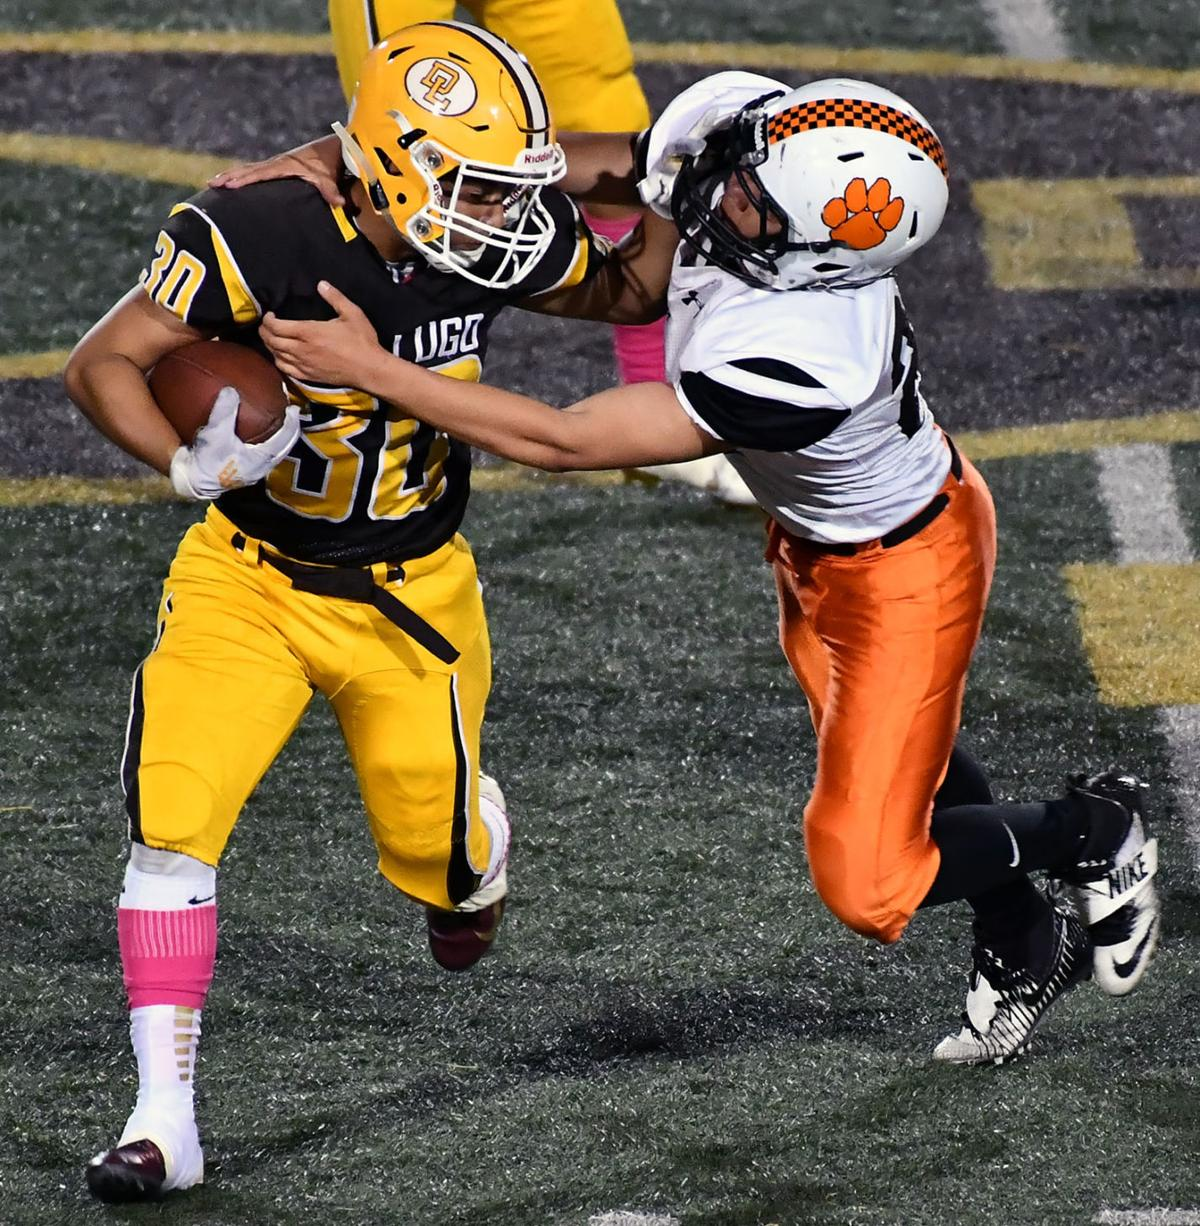 PHOTOS: High School Football Chaffey 46, Don Lugo 12